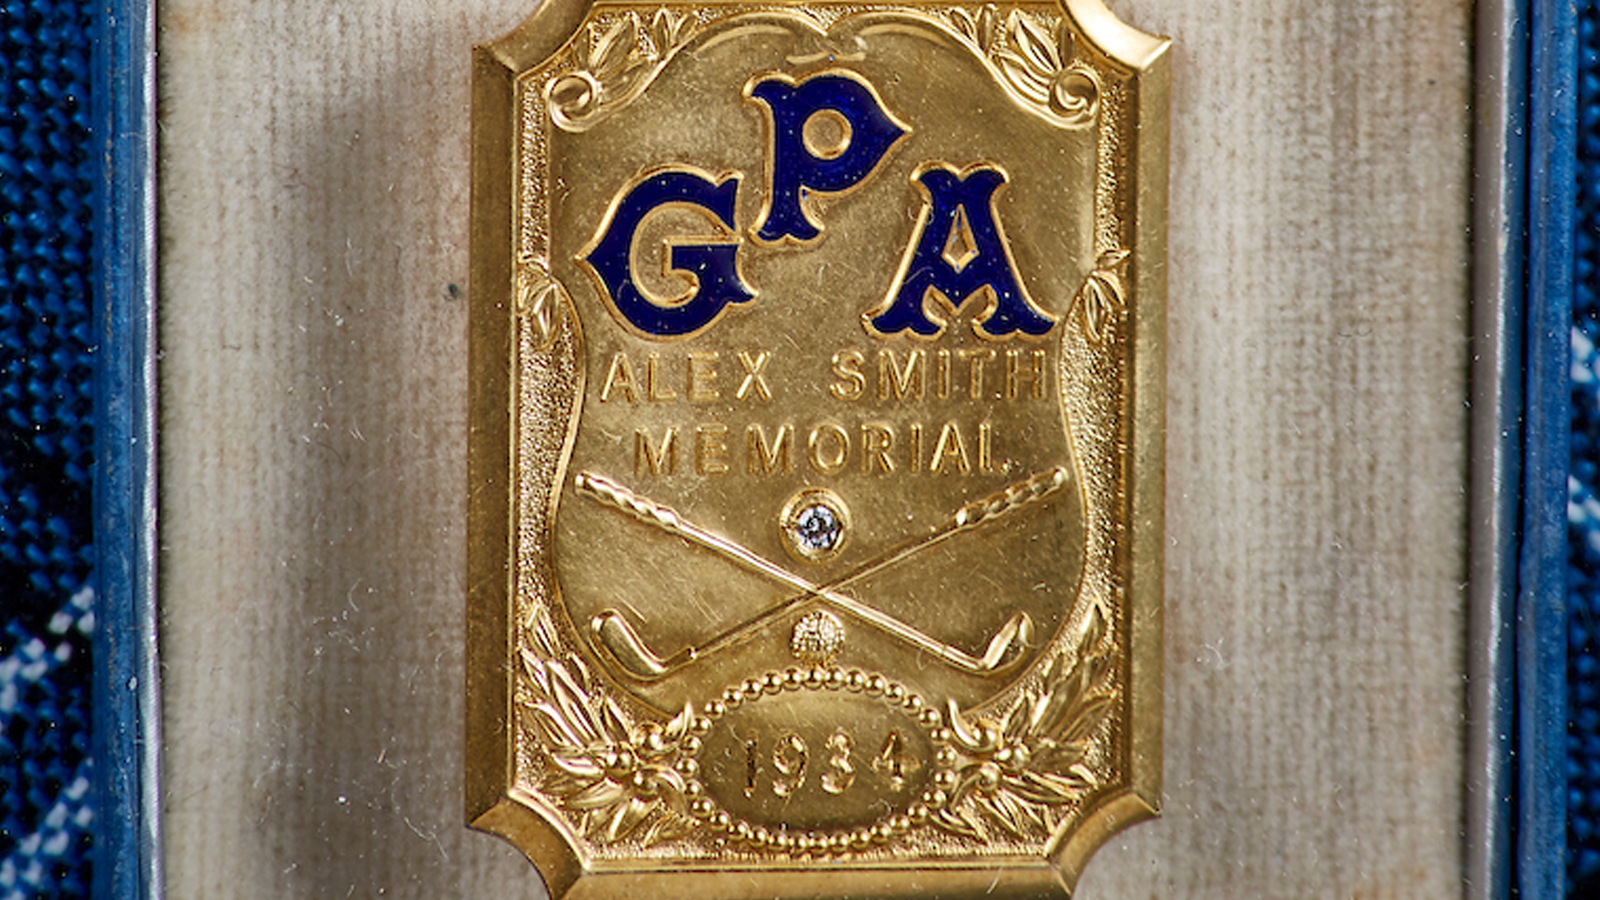 1934 Alex Smith Memorial Medal. One of eight created and gifted to the PGA and pre-dated 1931-1938.